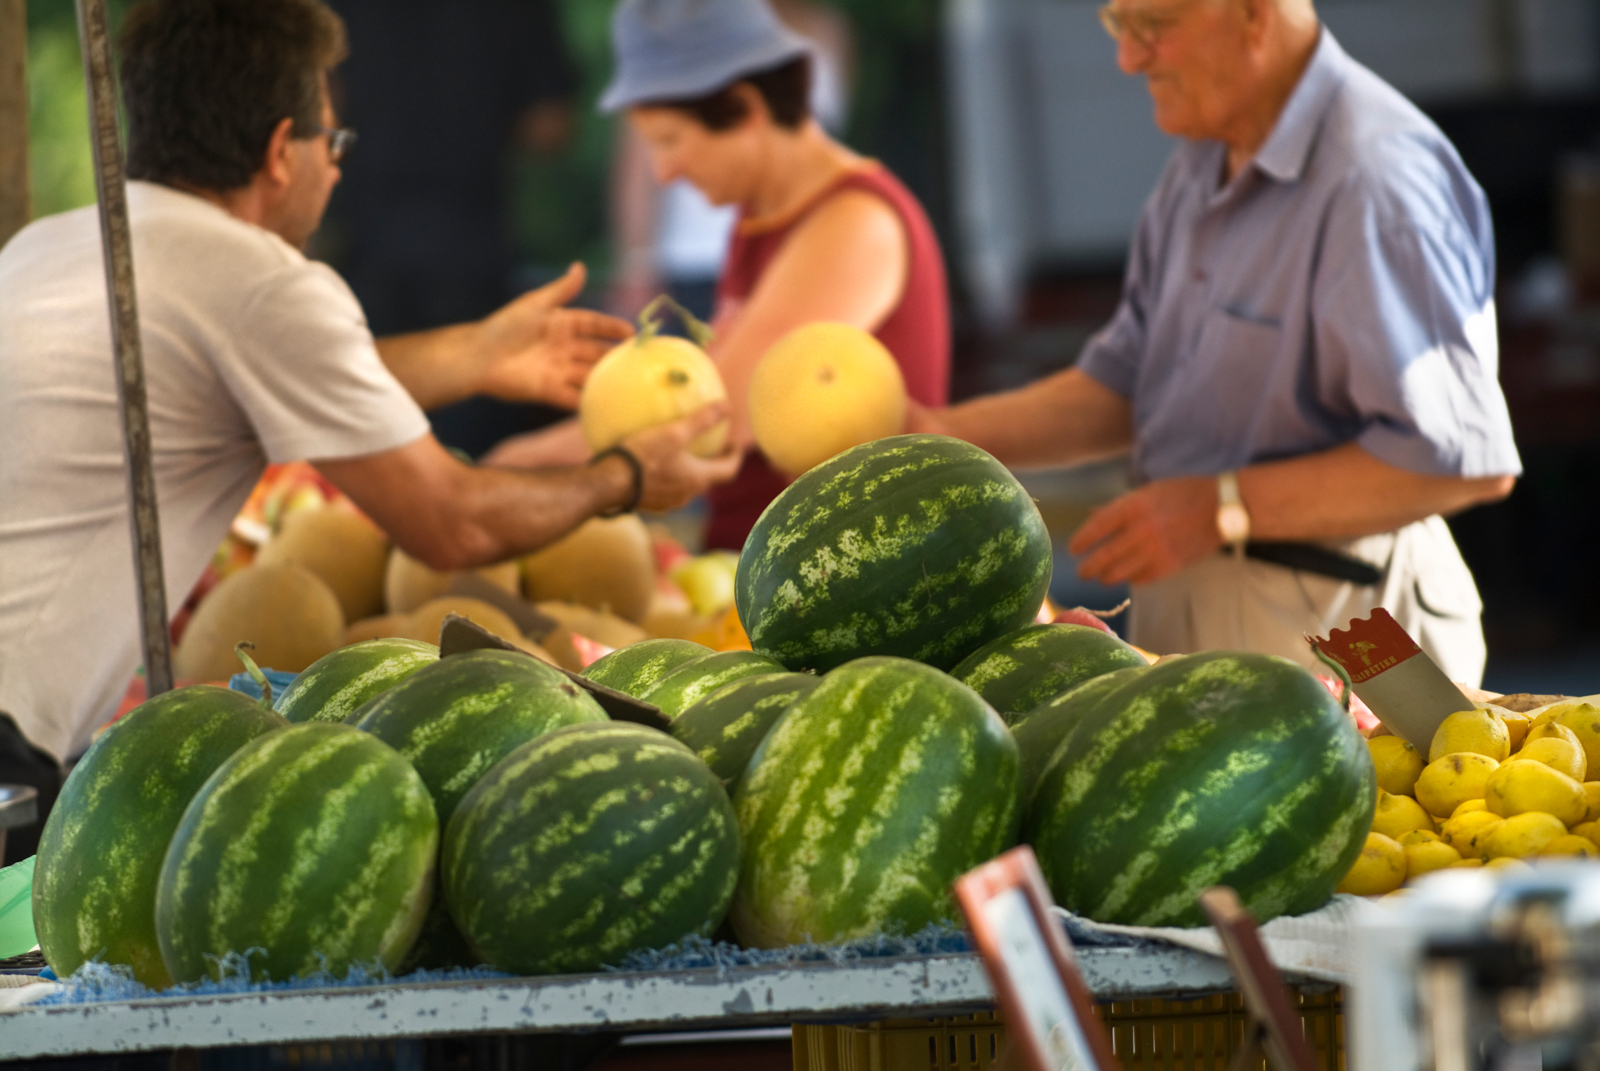 Organic Public Procurement is a Win-Win Scenario for Farmers, Consumers & Public Goods